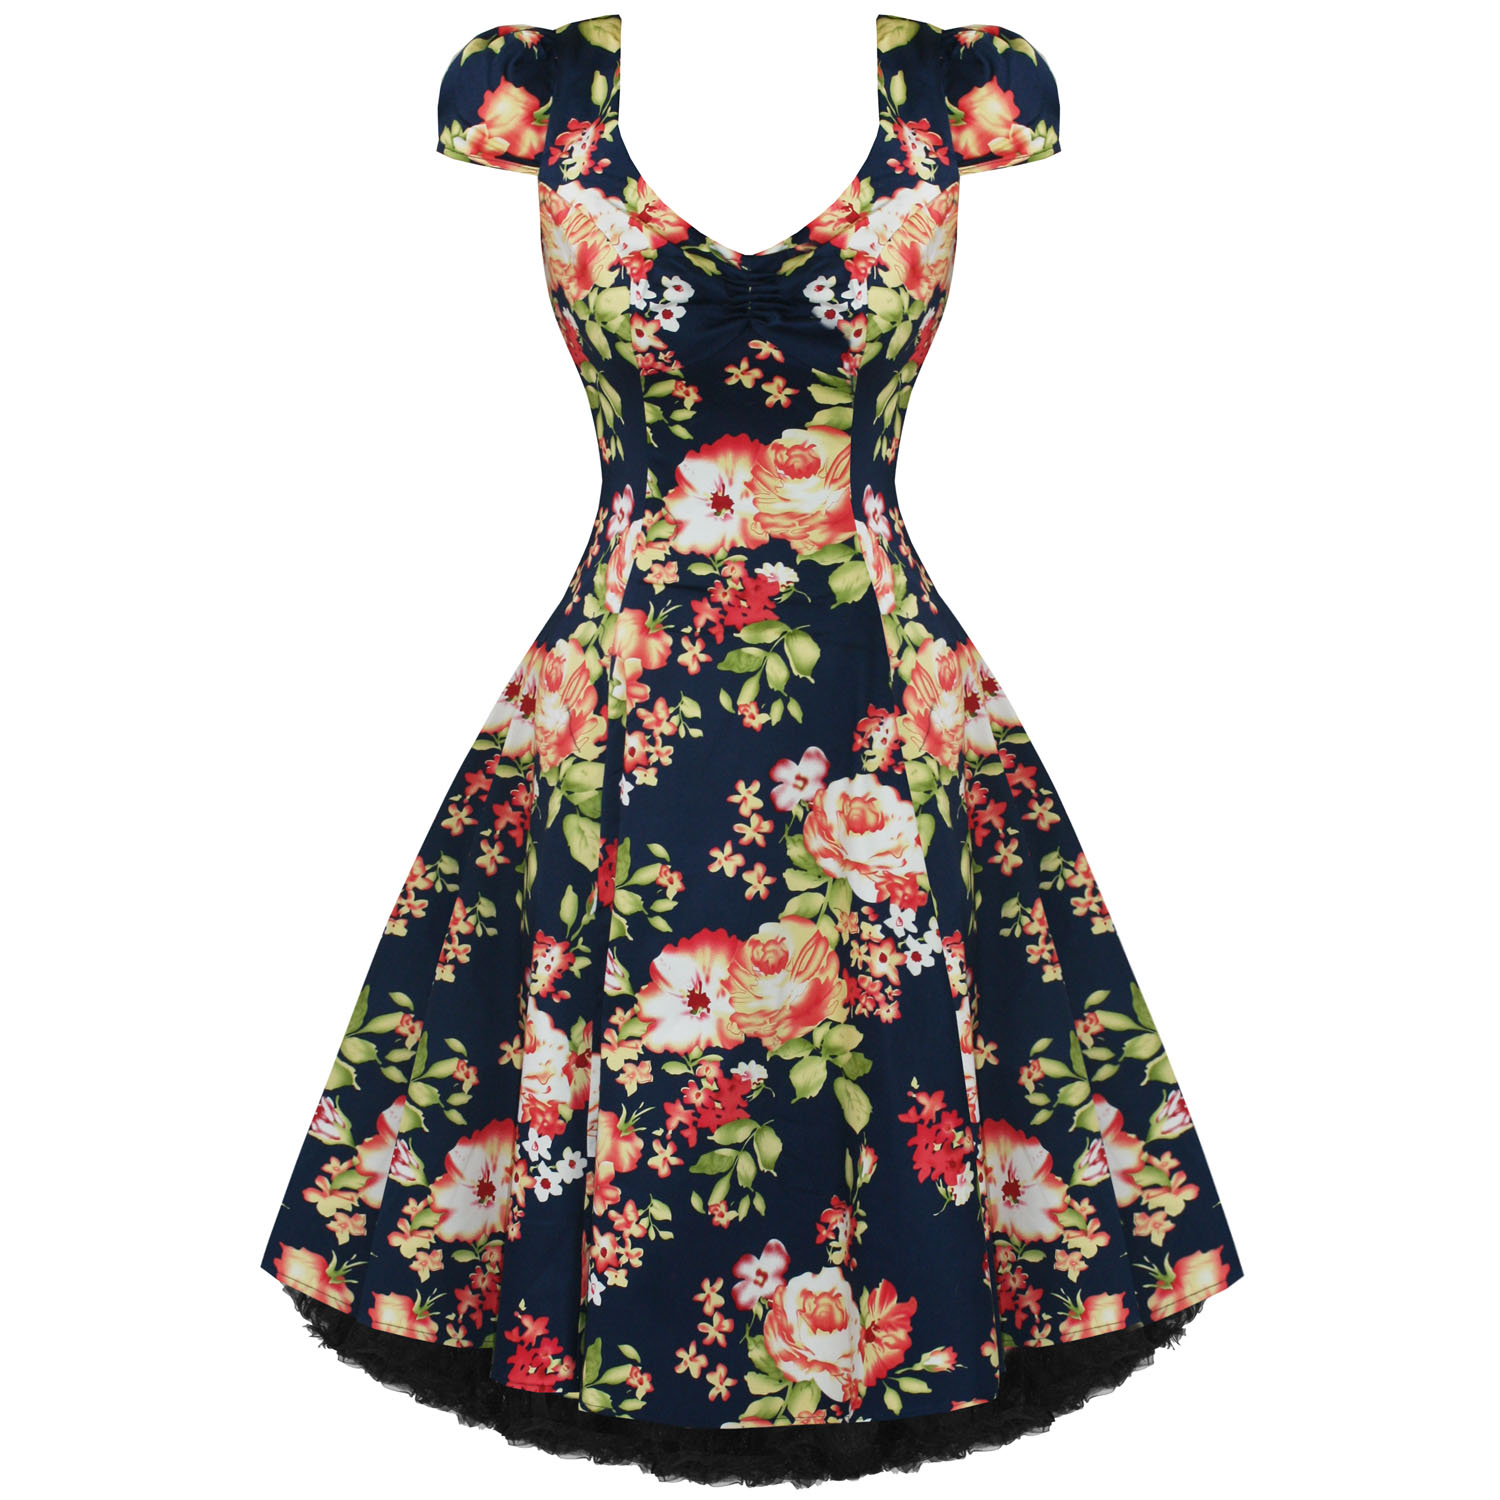 Buy the latest women's Floral dresses online at low price. StyleWe offers cheap dresses in red, black, white and more for different occasions.